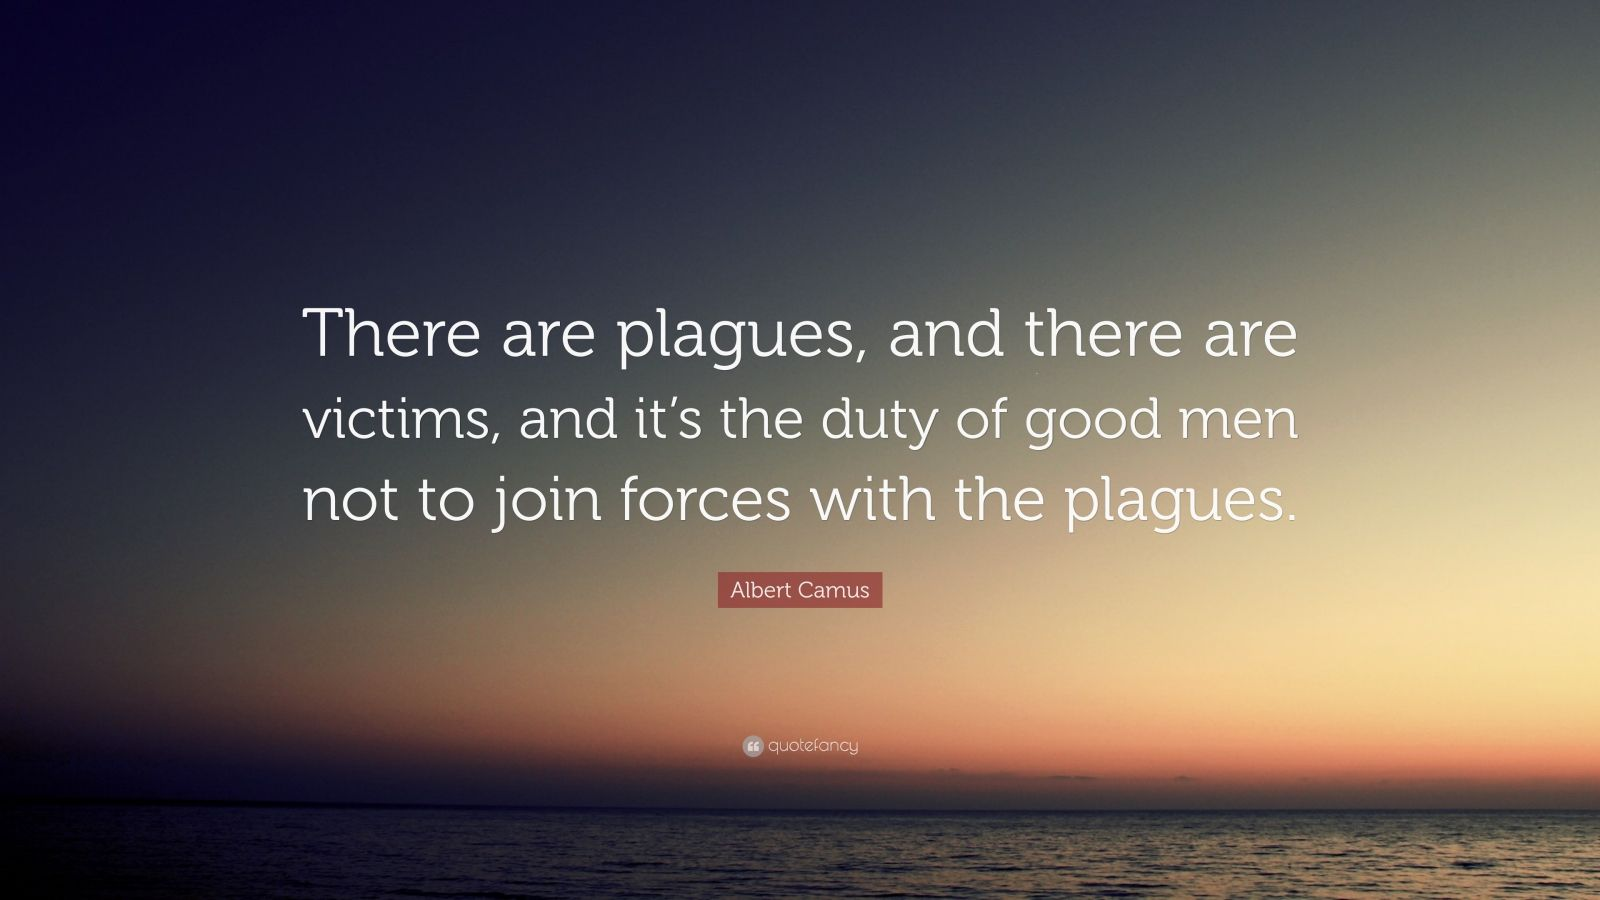 """Albert Camus Quote: """"There are plagues, and there are victims, and it's the duty of good men not to join forces with the plagues."""""""